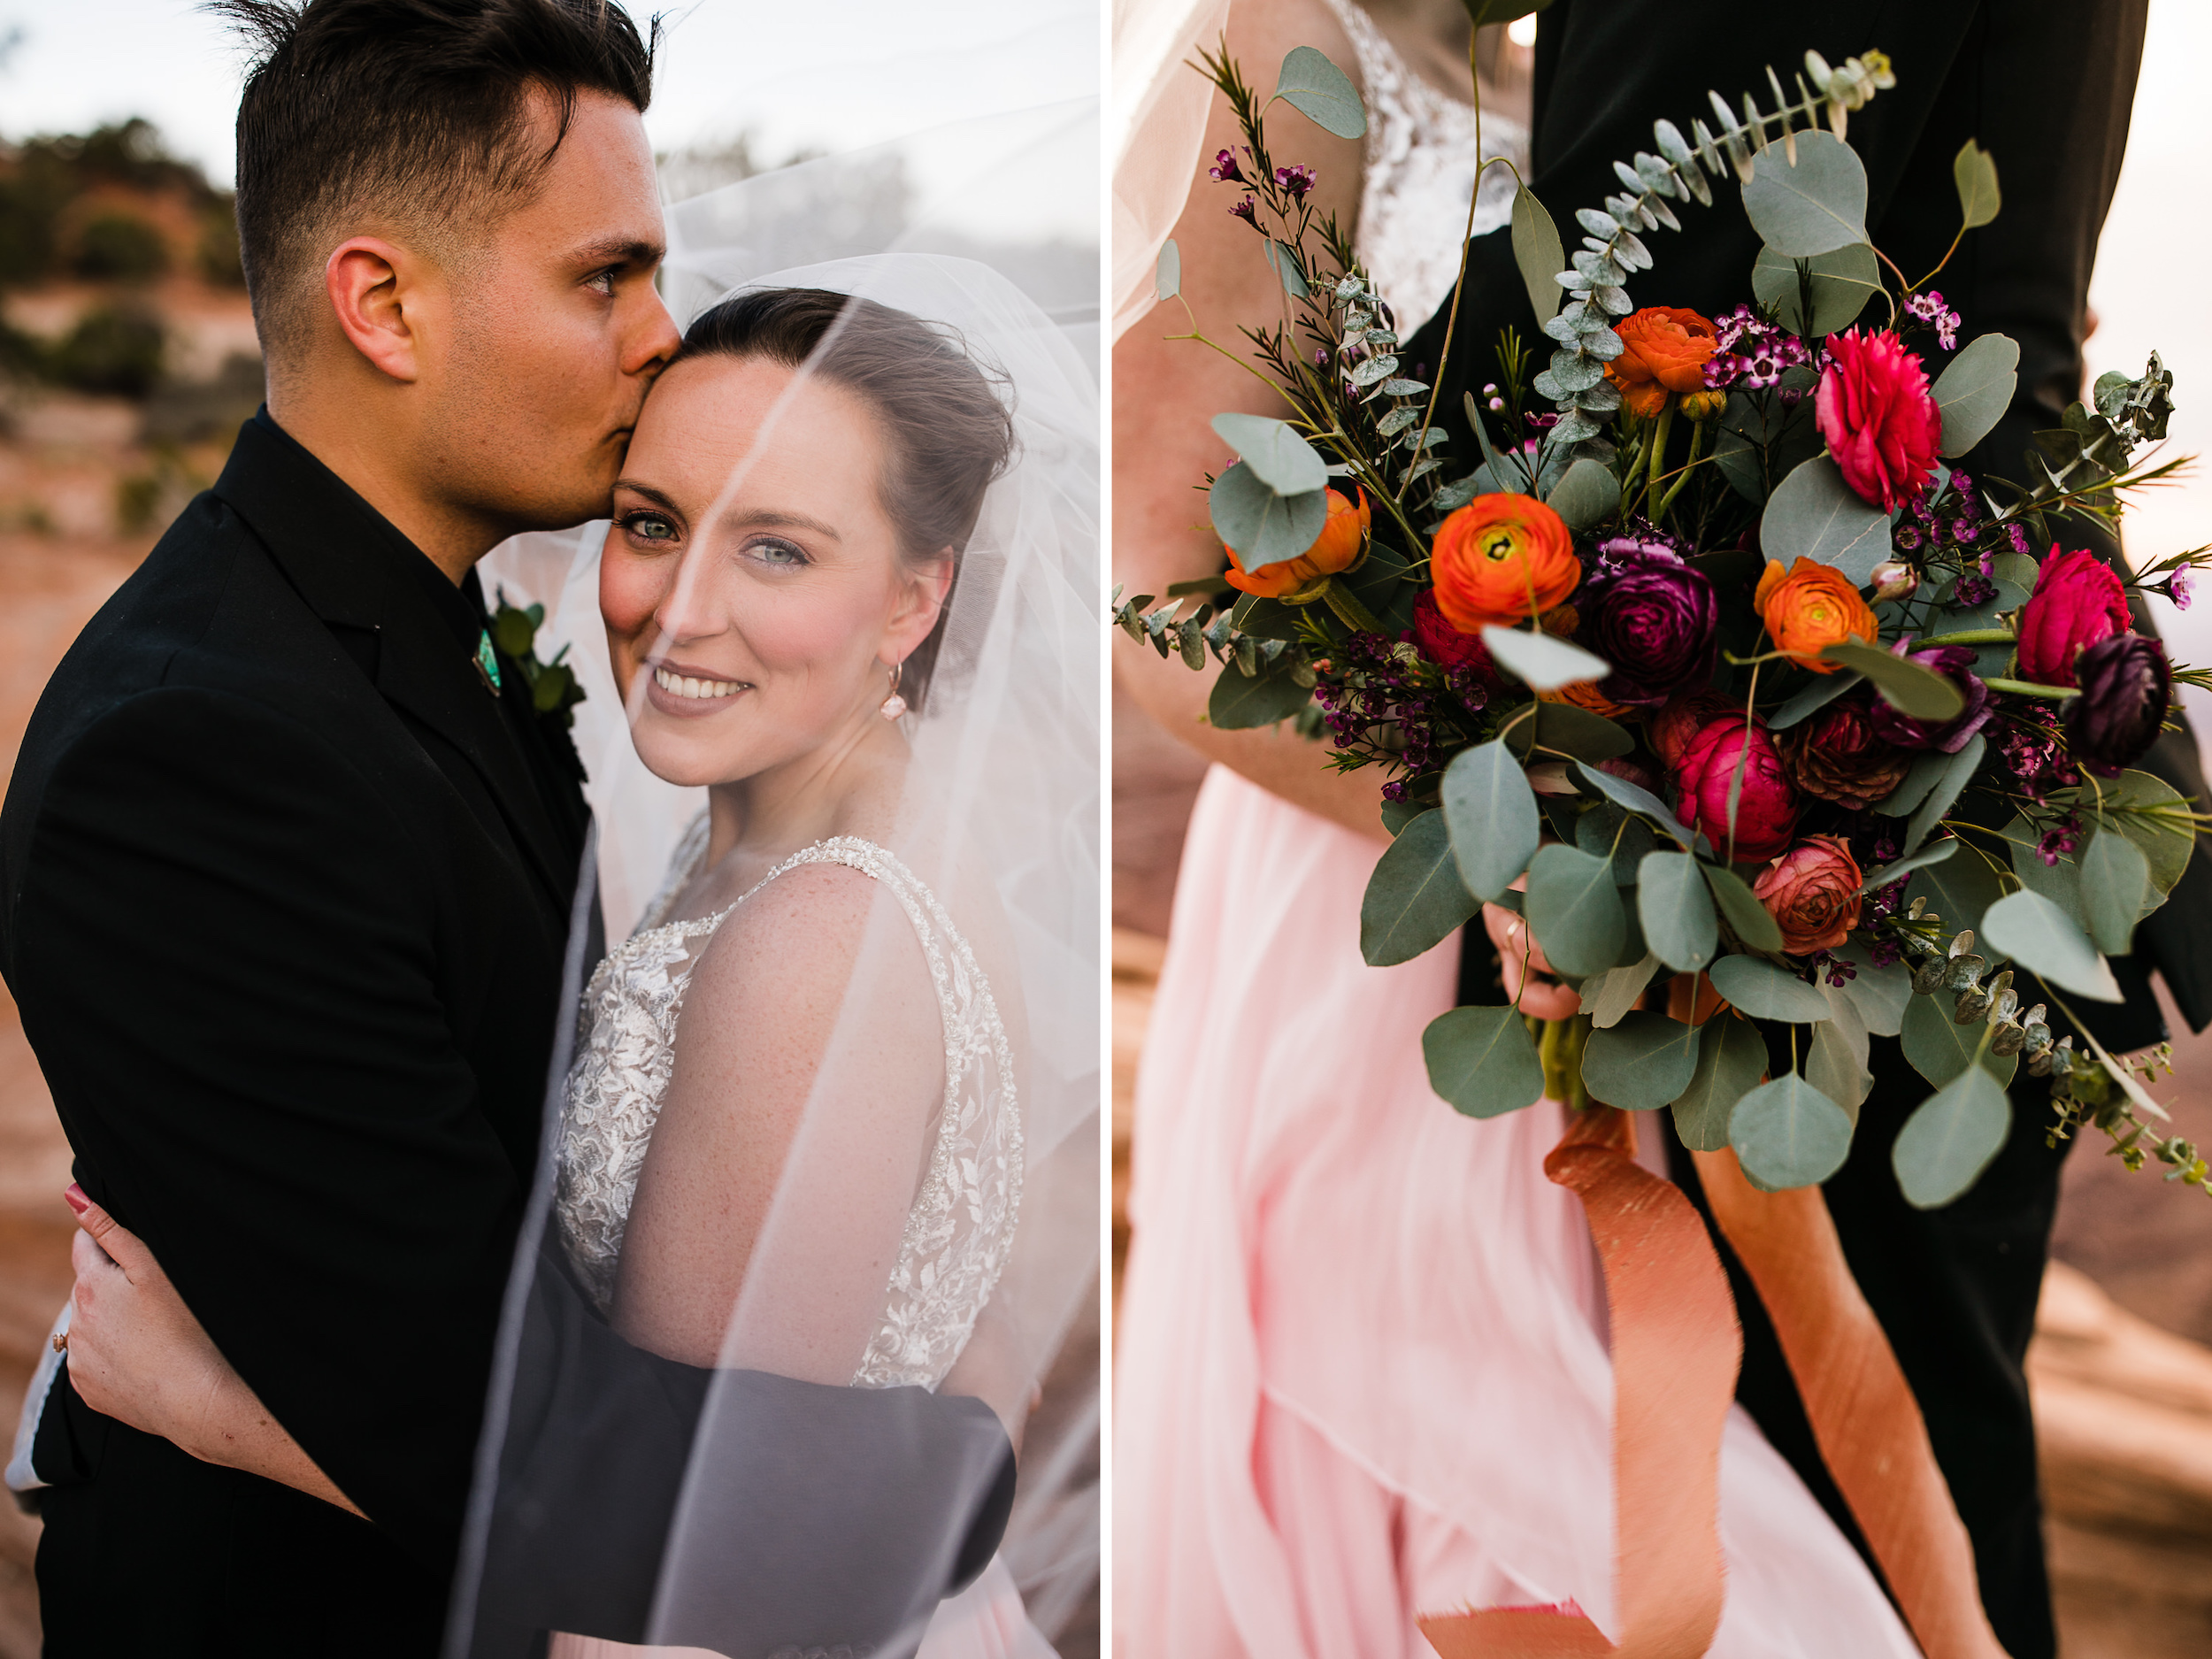 desert wedding in canyonlands national park | mesa arch elopement | moab utah wedding photographer | desert wedding bouquet | the hearnes adventure photography